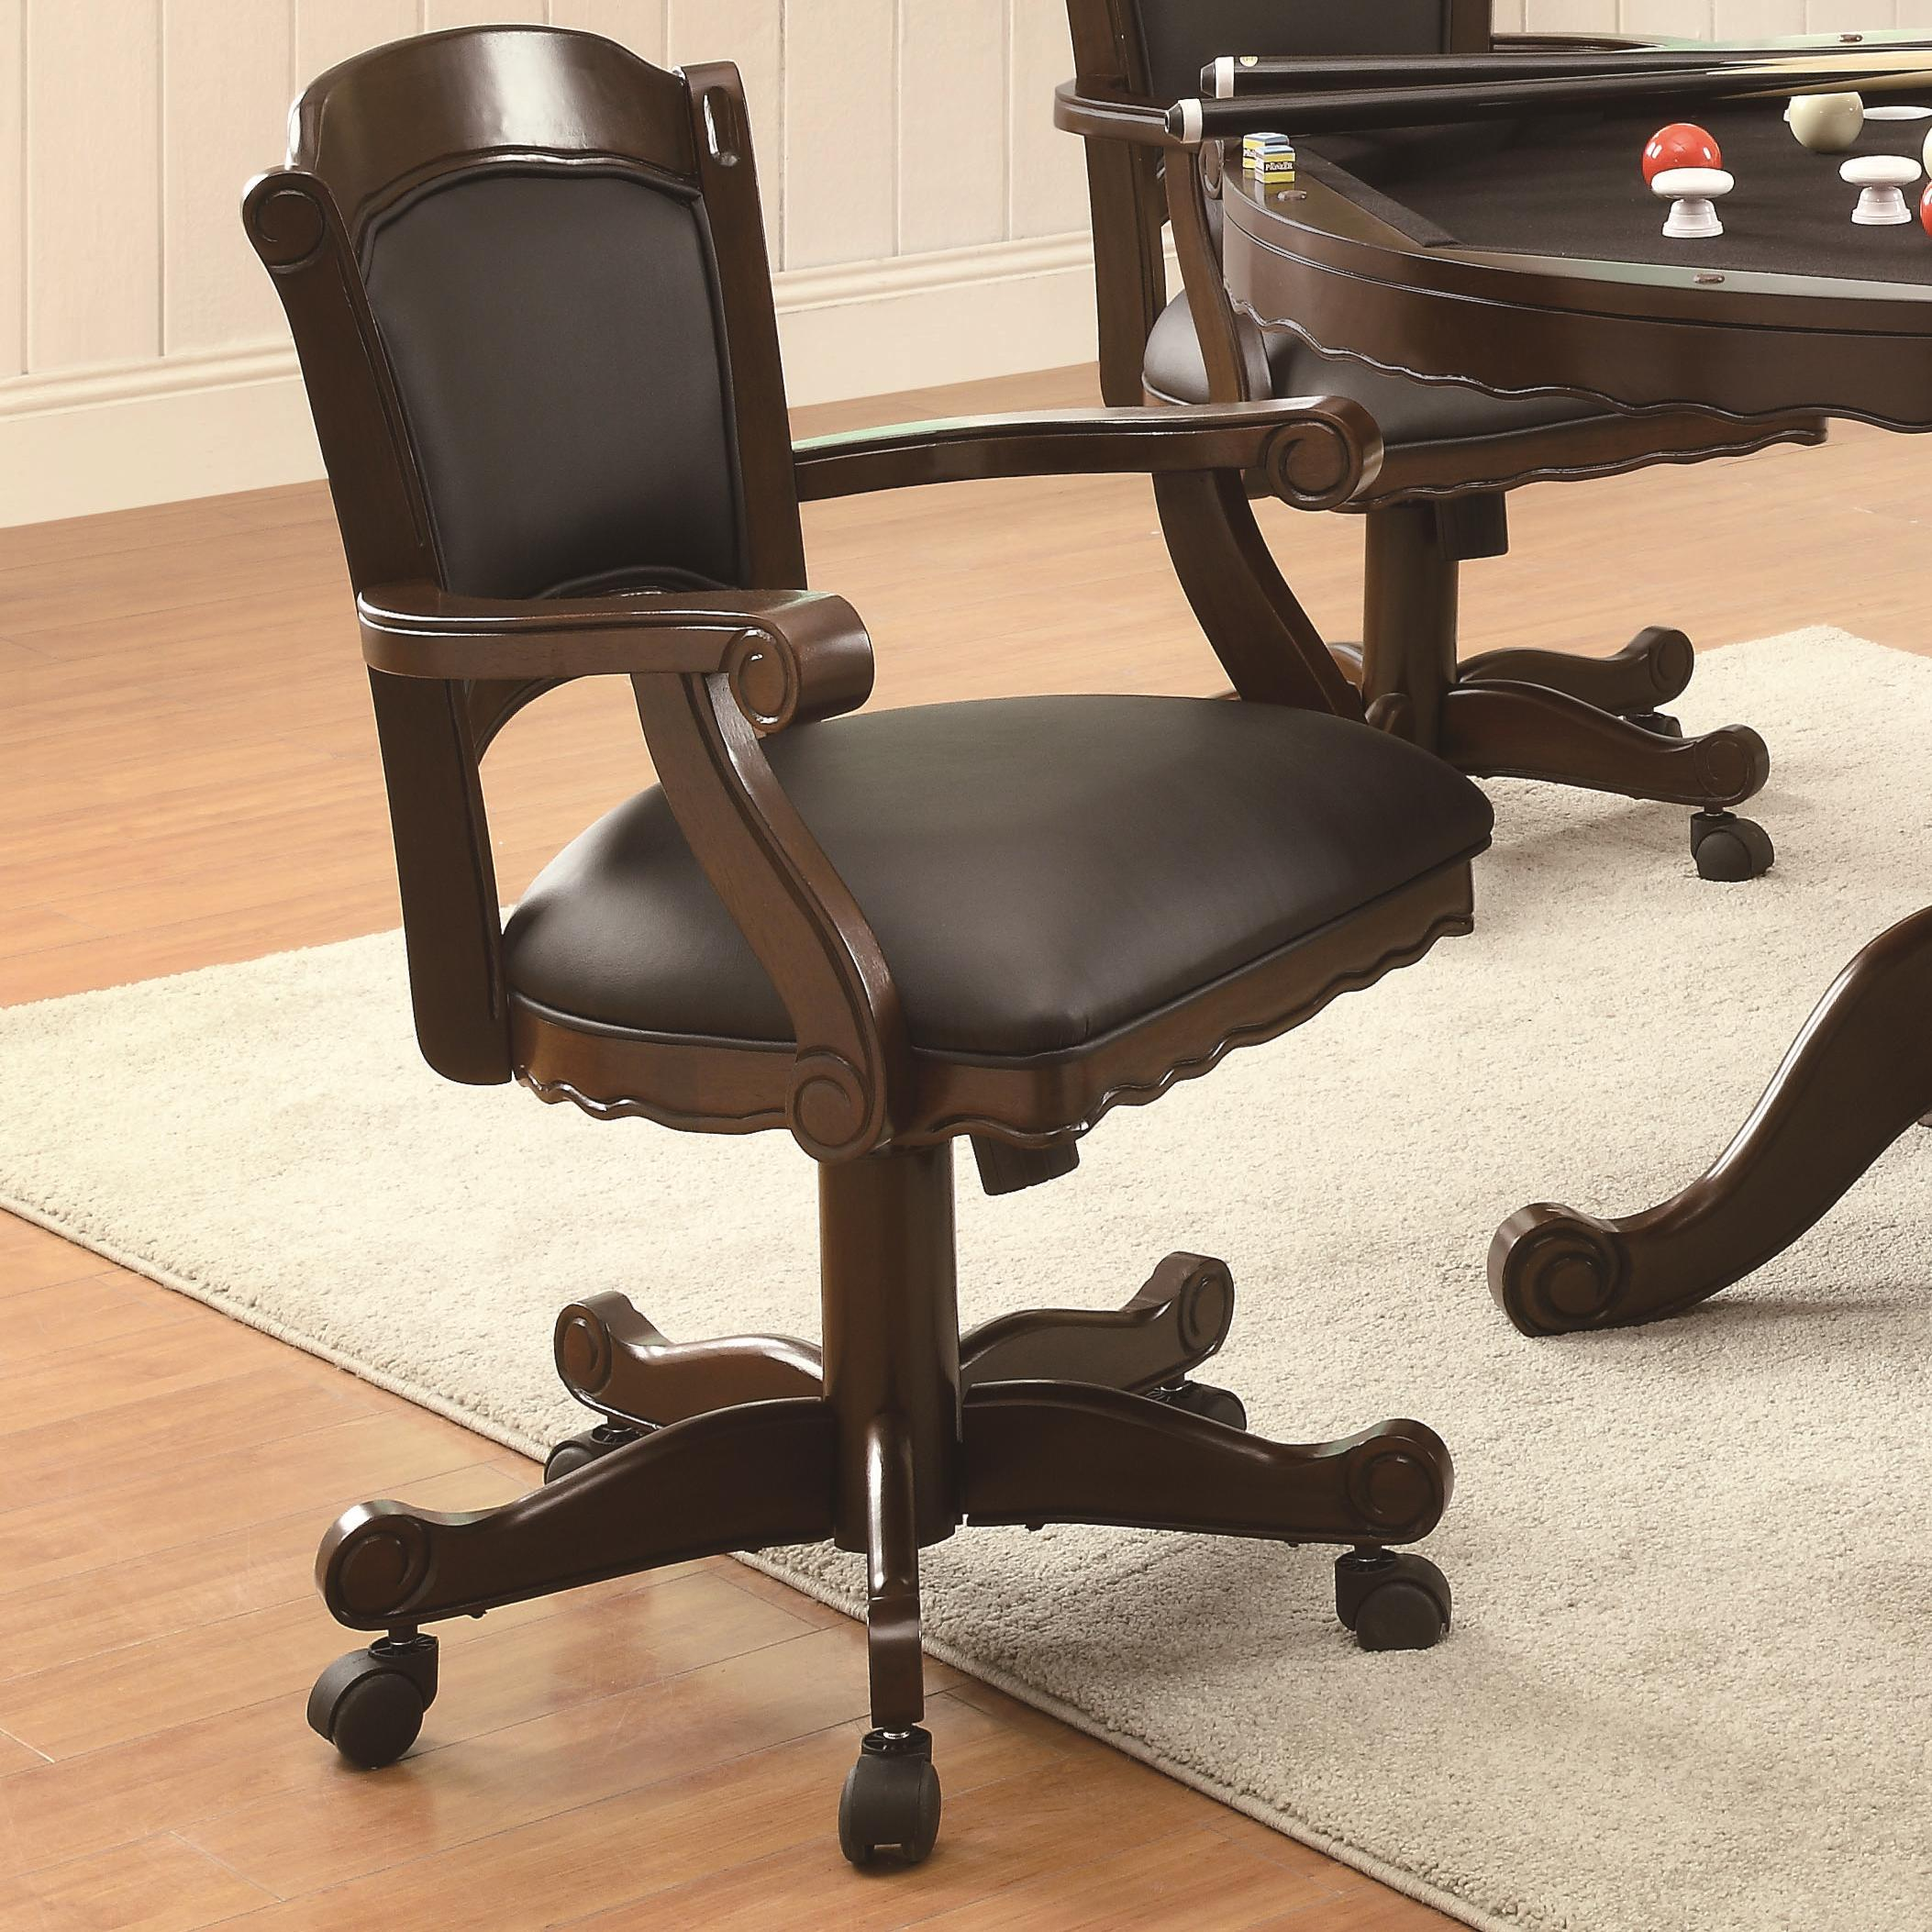 Coaster Turk 100872 Arm Game Chair with Casters and Fabric